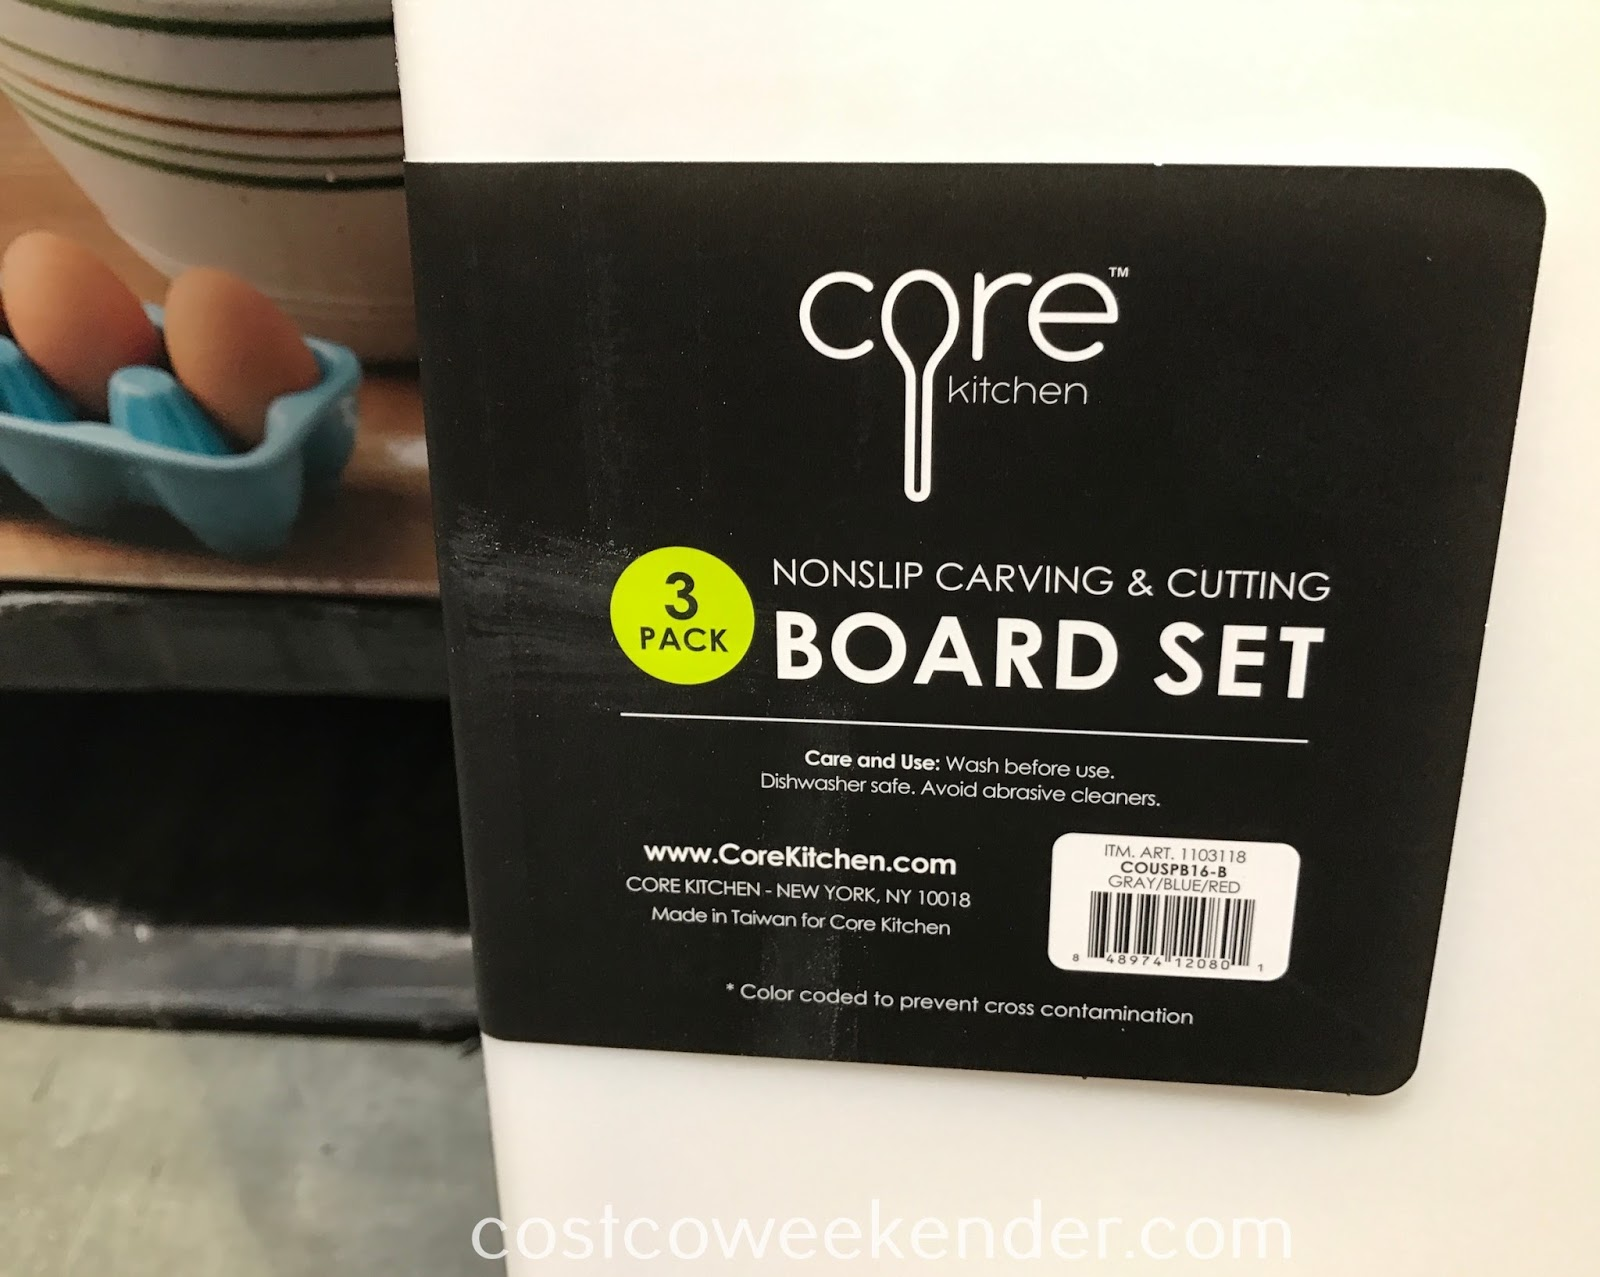 Costco 1103118 - Core Kitchen Nonslip Carving & Cutting Board Set: great for the kitchen and any home chef